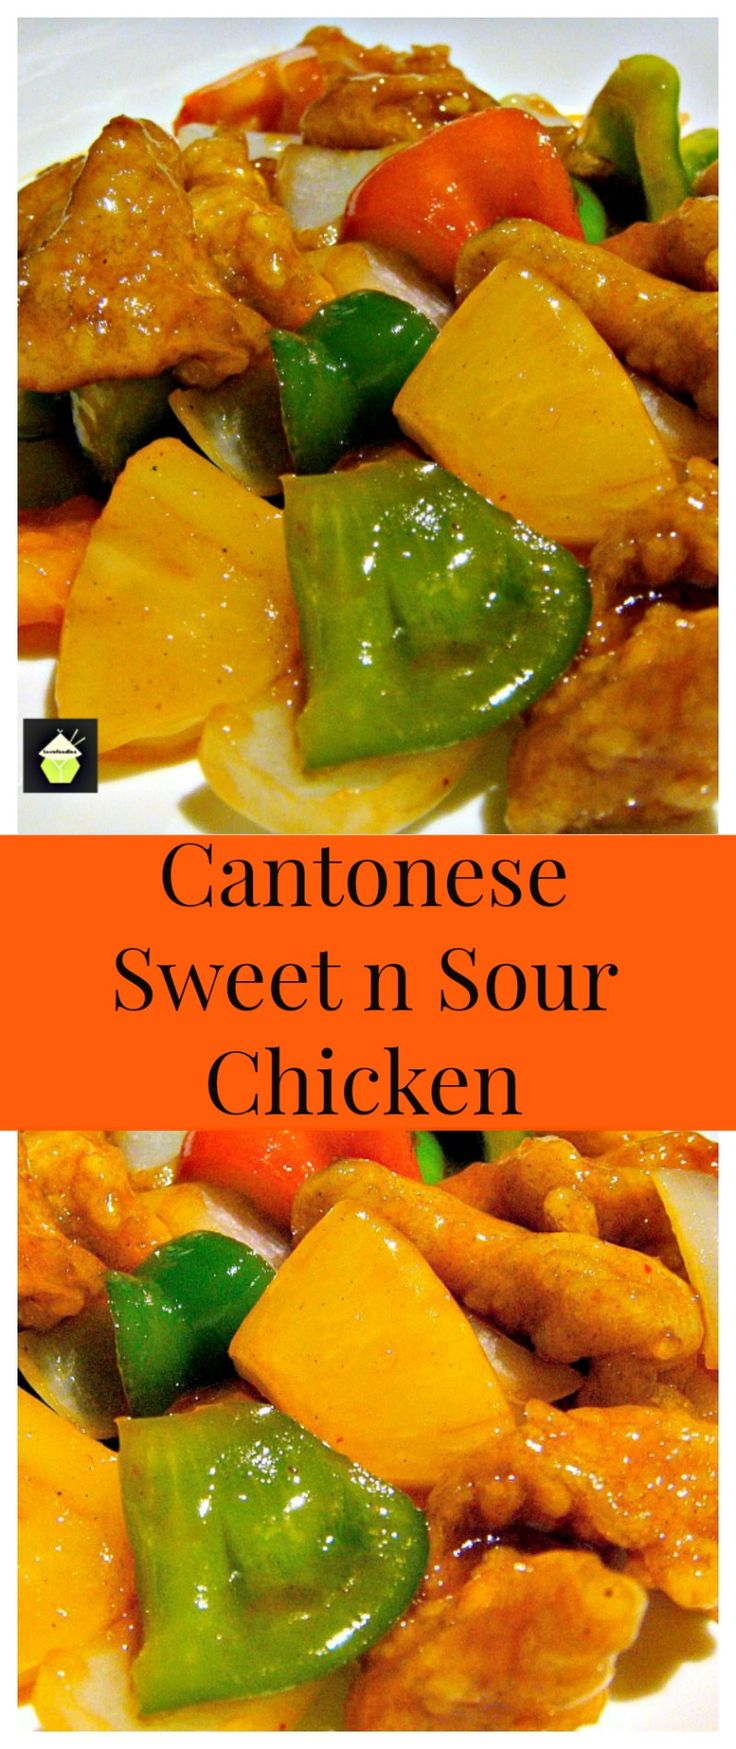 Authentic Cantonese Sweet and Sour Chicken - Come and see how to make it just…